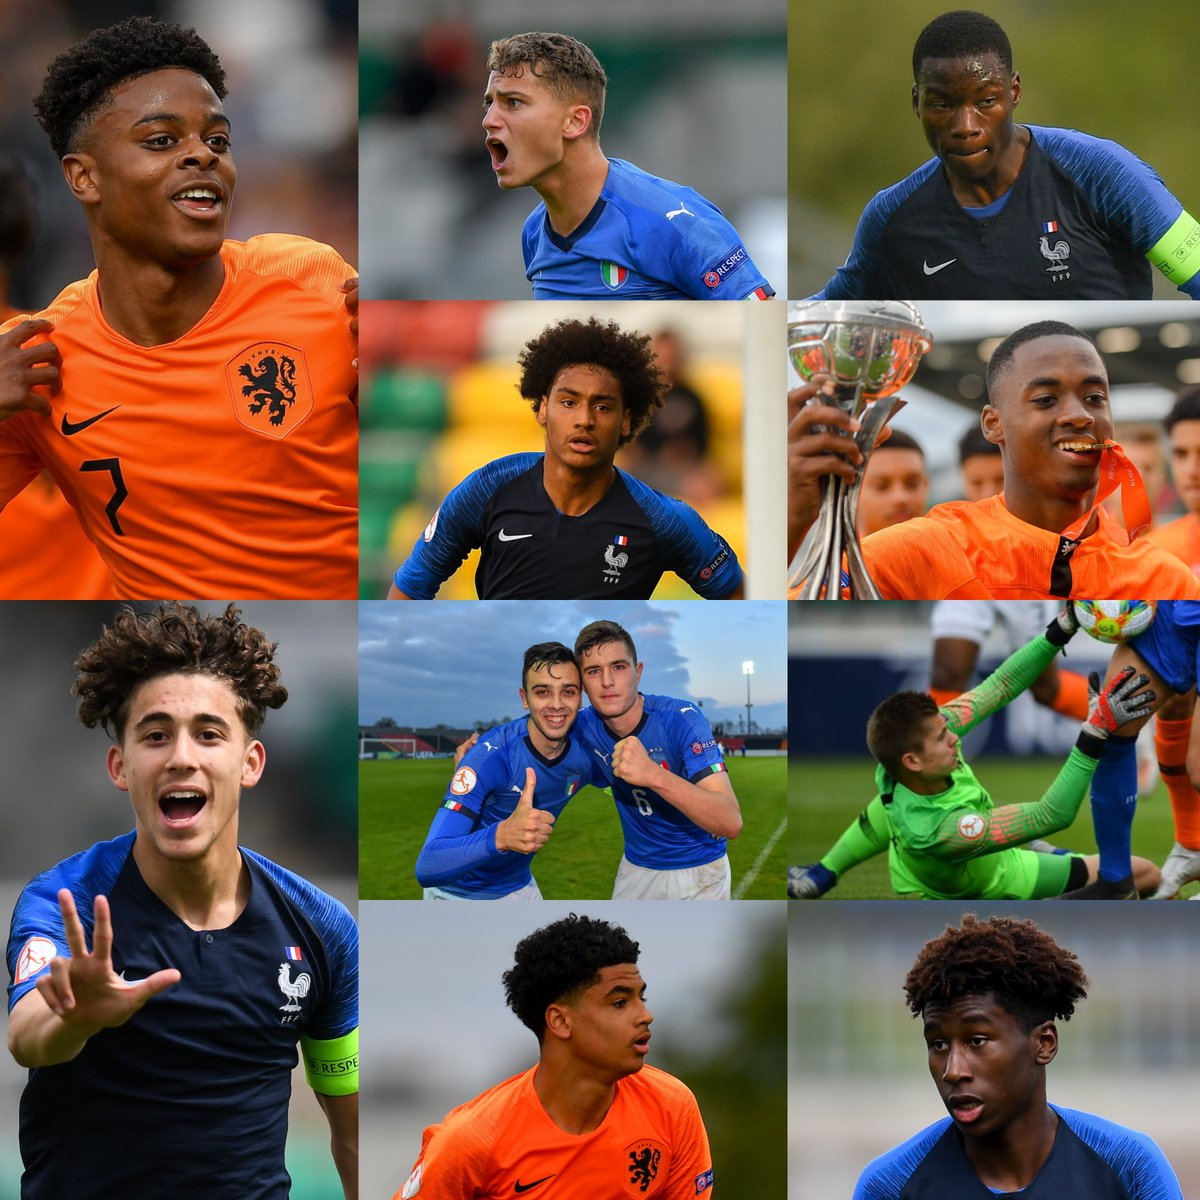 The #U17EURO team of the tournament has been named⭐⭐⭐⭐⭐⭐⭐⭐⭐⭐⭐  👇  https://t.co/IQun355dMW https://t.co/OhZQnBhRwn